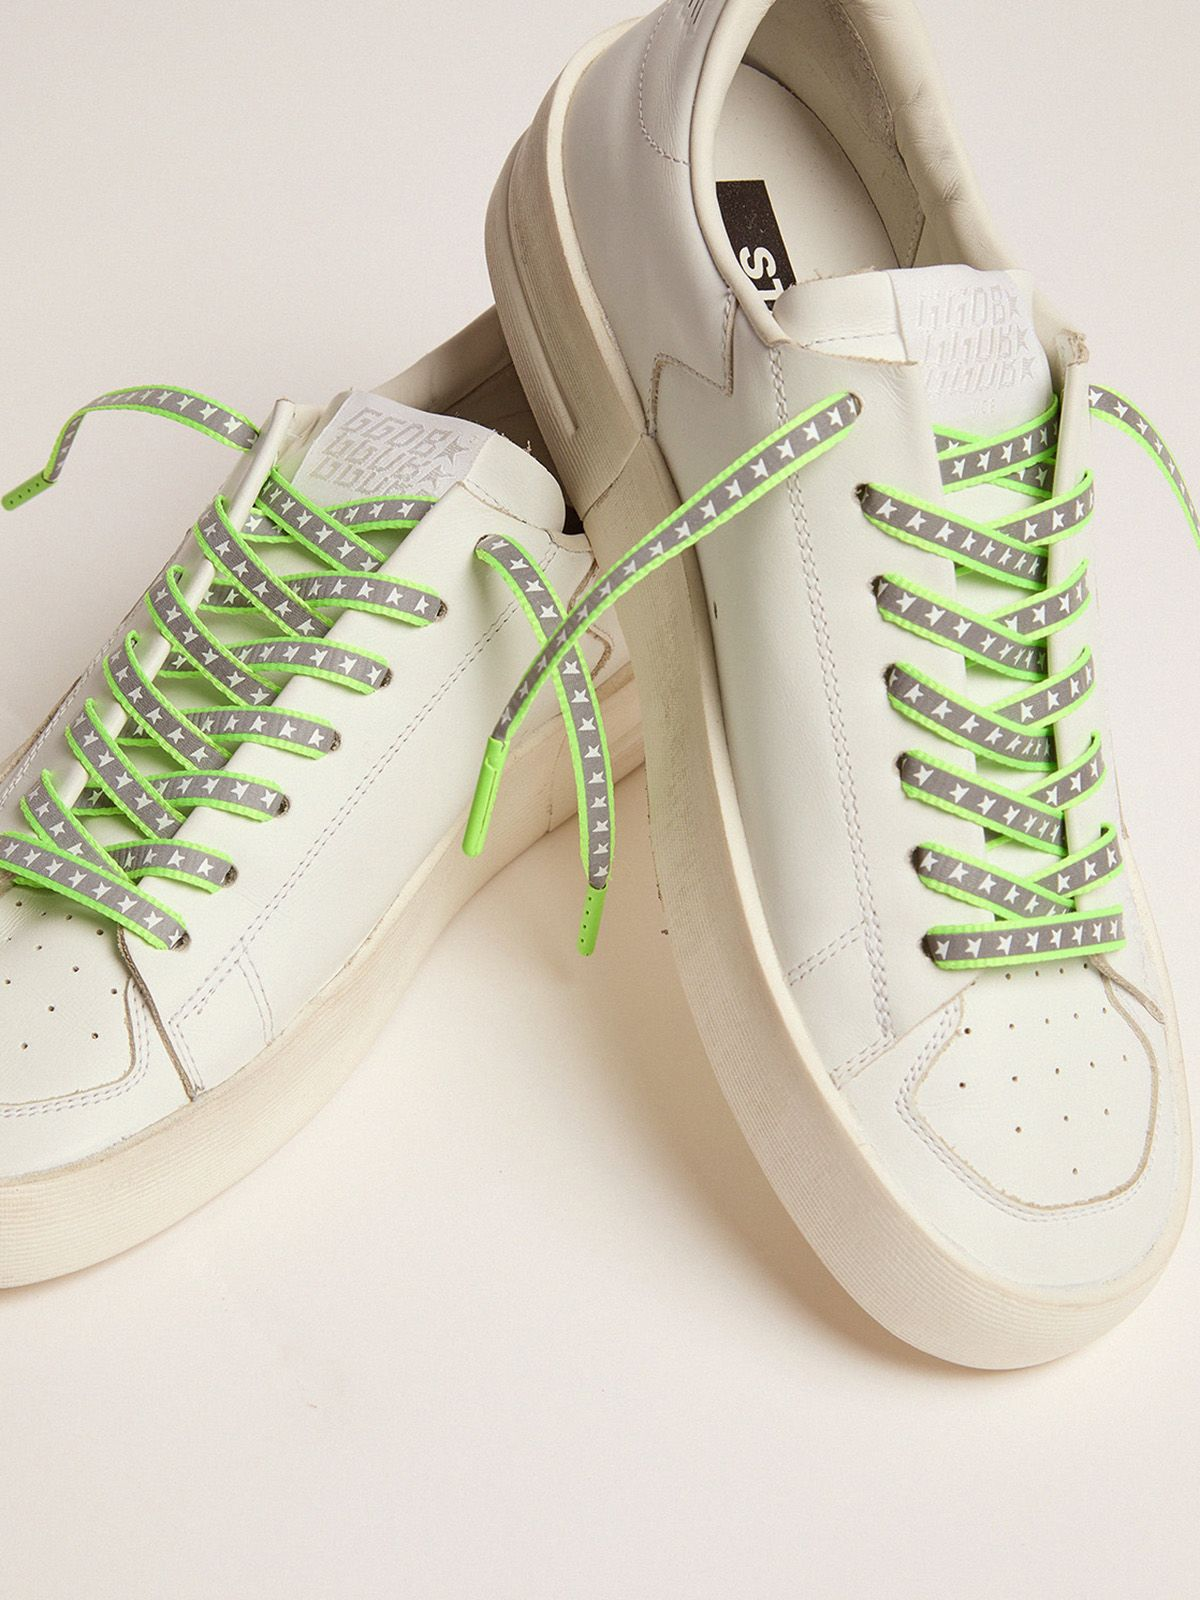 Golden Goose - Men's neon green reflective laces with stars in